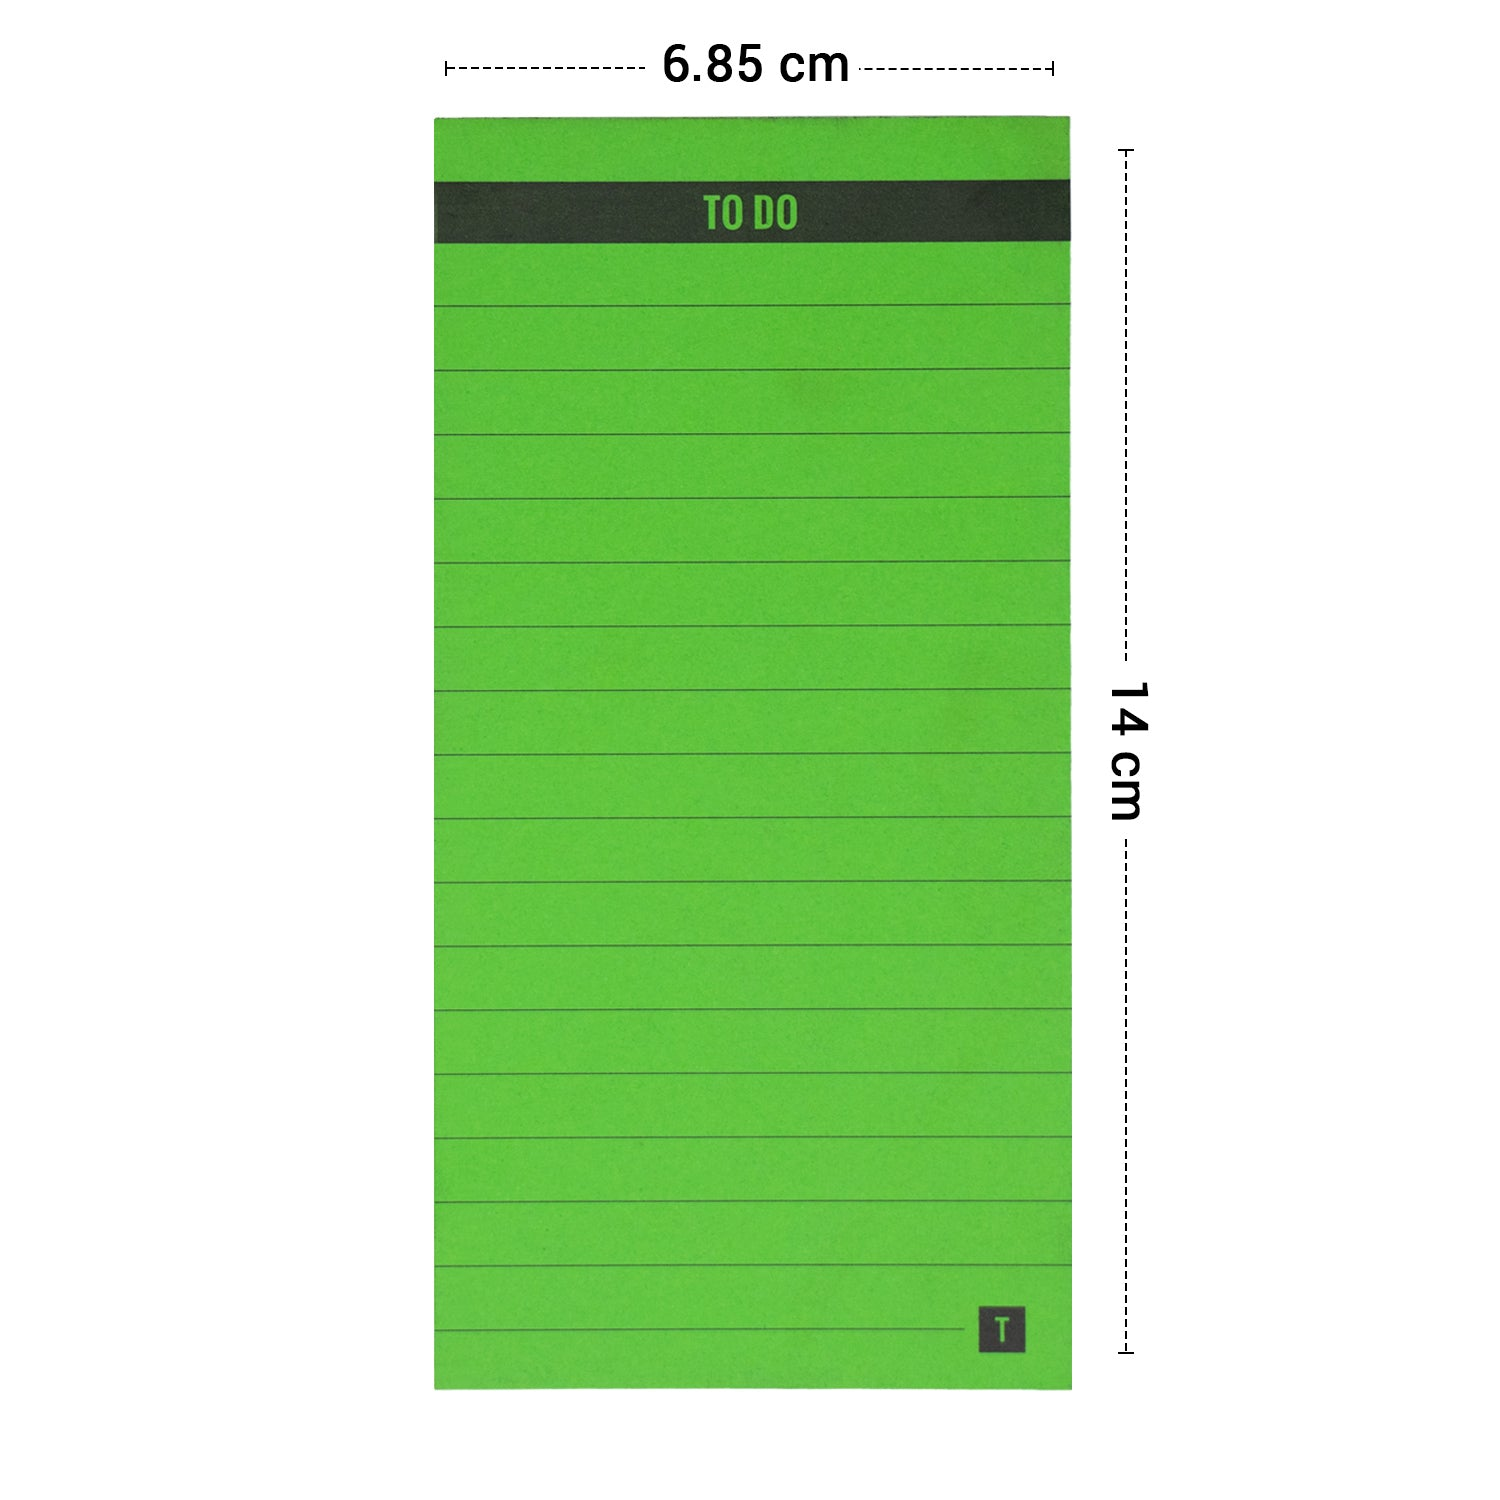 To Do Green Memo Pad